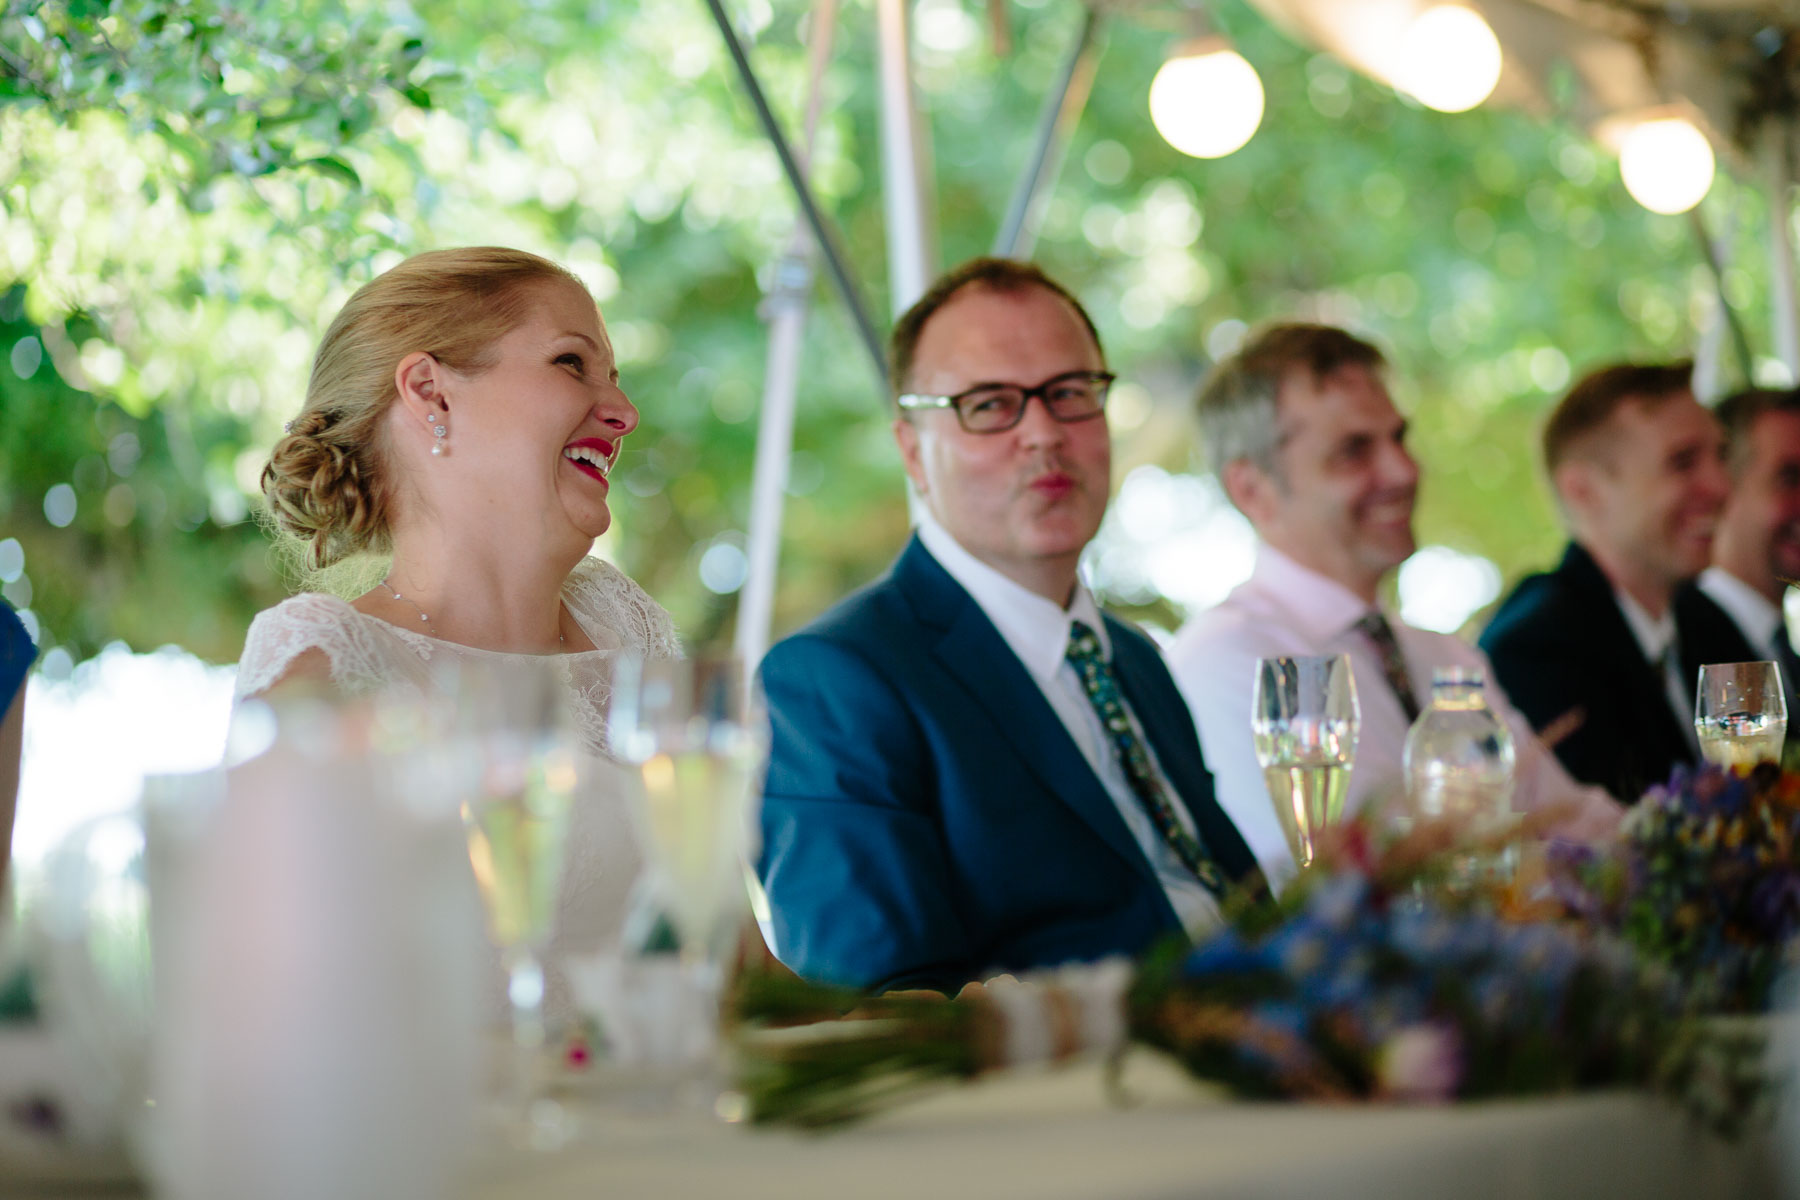 The bride laughs and the groom looks at her during a speech at a rural farm wedding.